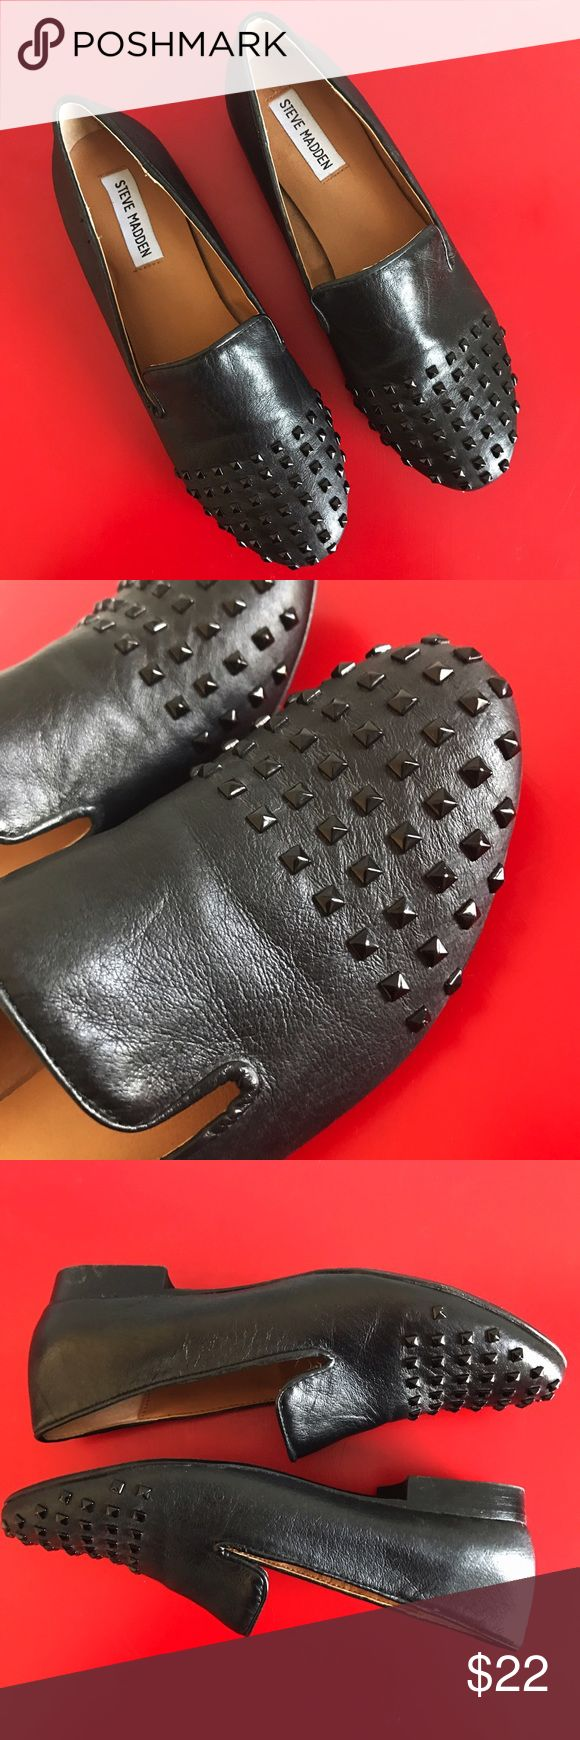 Steve Madden Black Studded Loafers Steve Madden Black Studded Loafers looking for a new home! Only worn twice & in great condition! One stud missing from the side of left shoe but hardly noticeable. Leather uppers. Size US 7.5! Come give these little guys some love! Thank you✨ Steve Madden Shoes Flats & Loafers